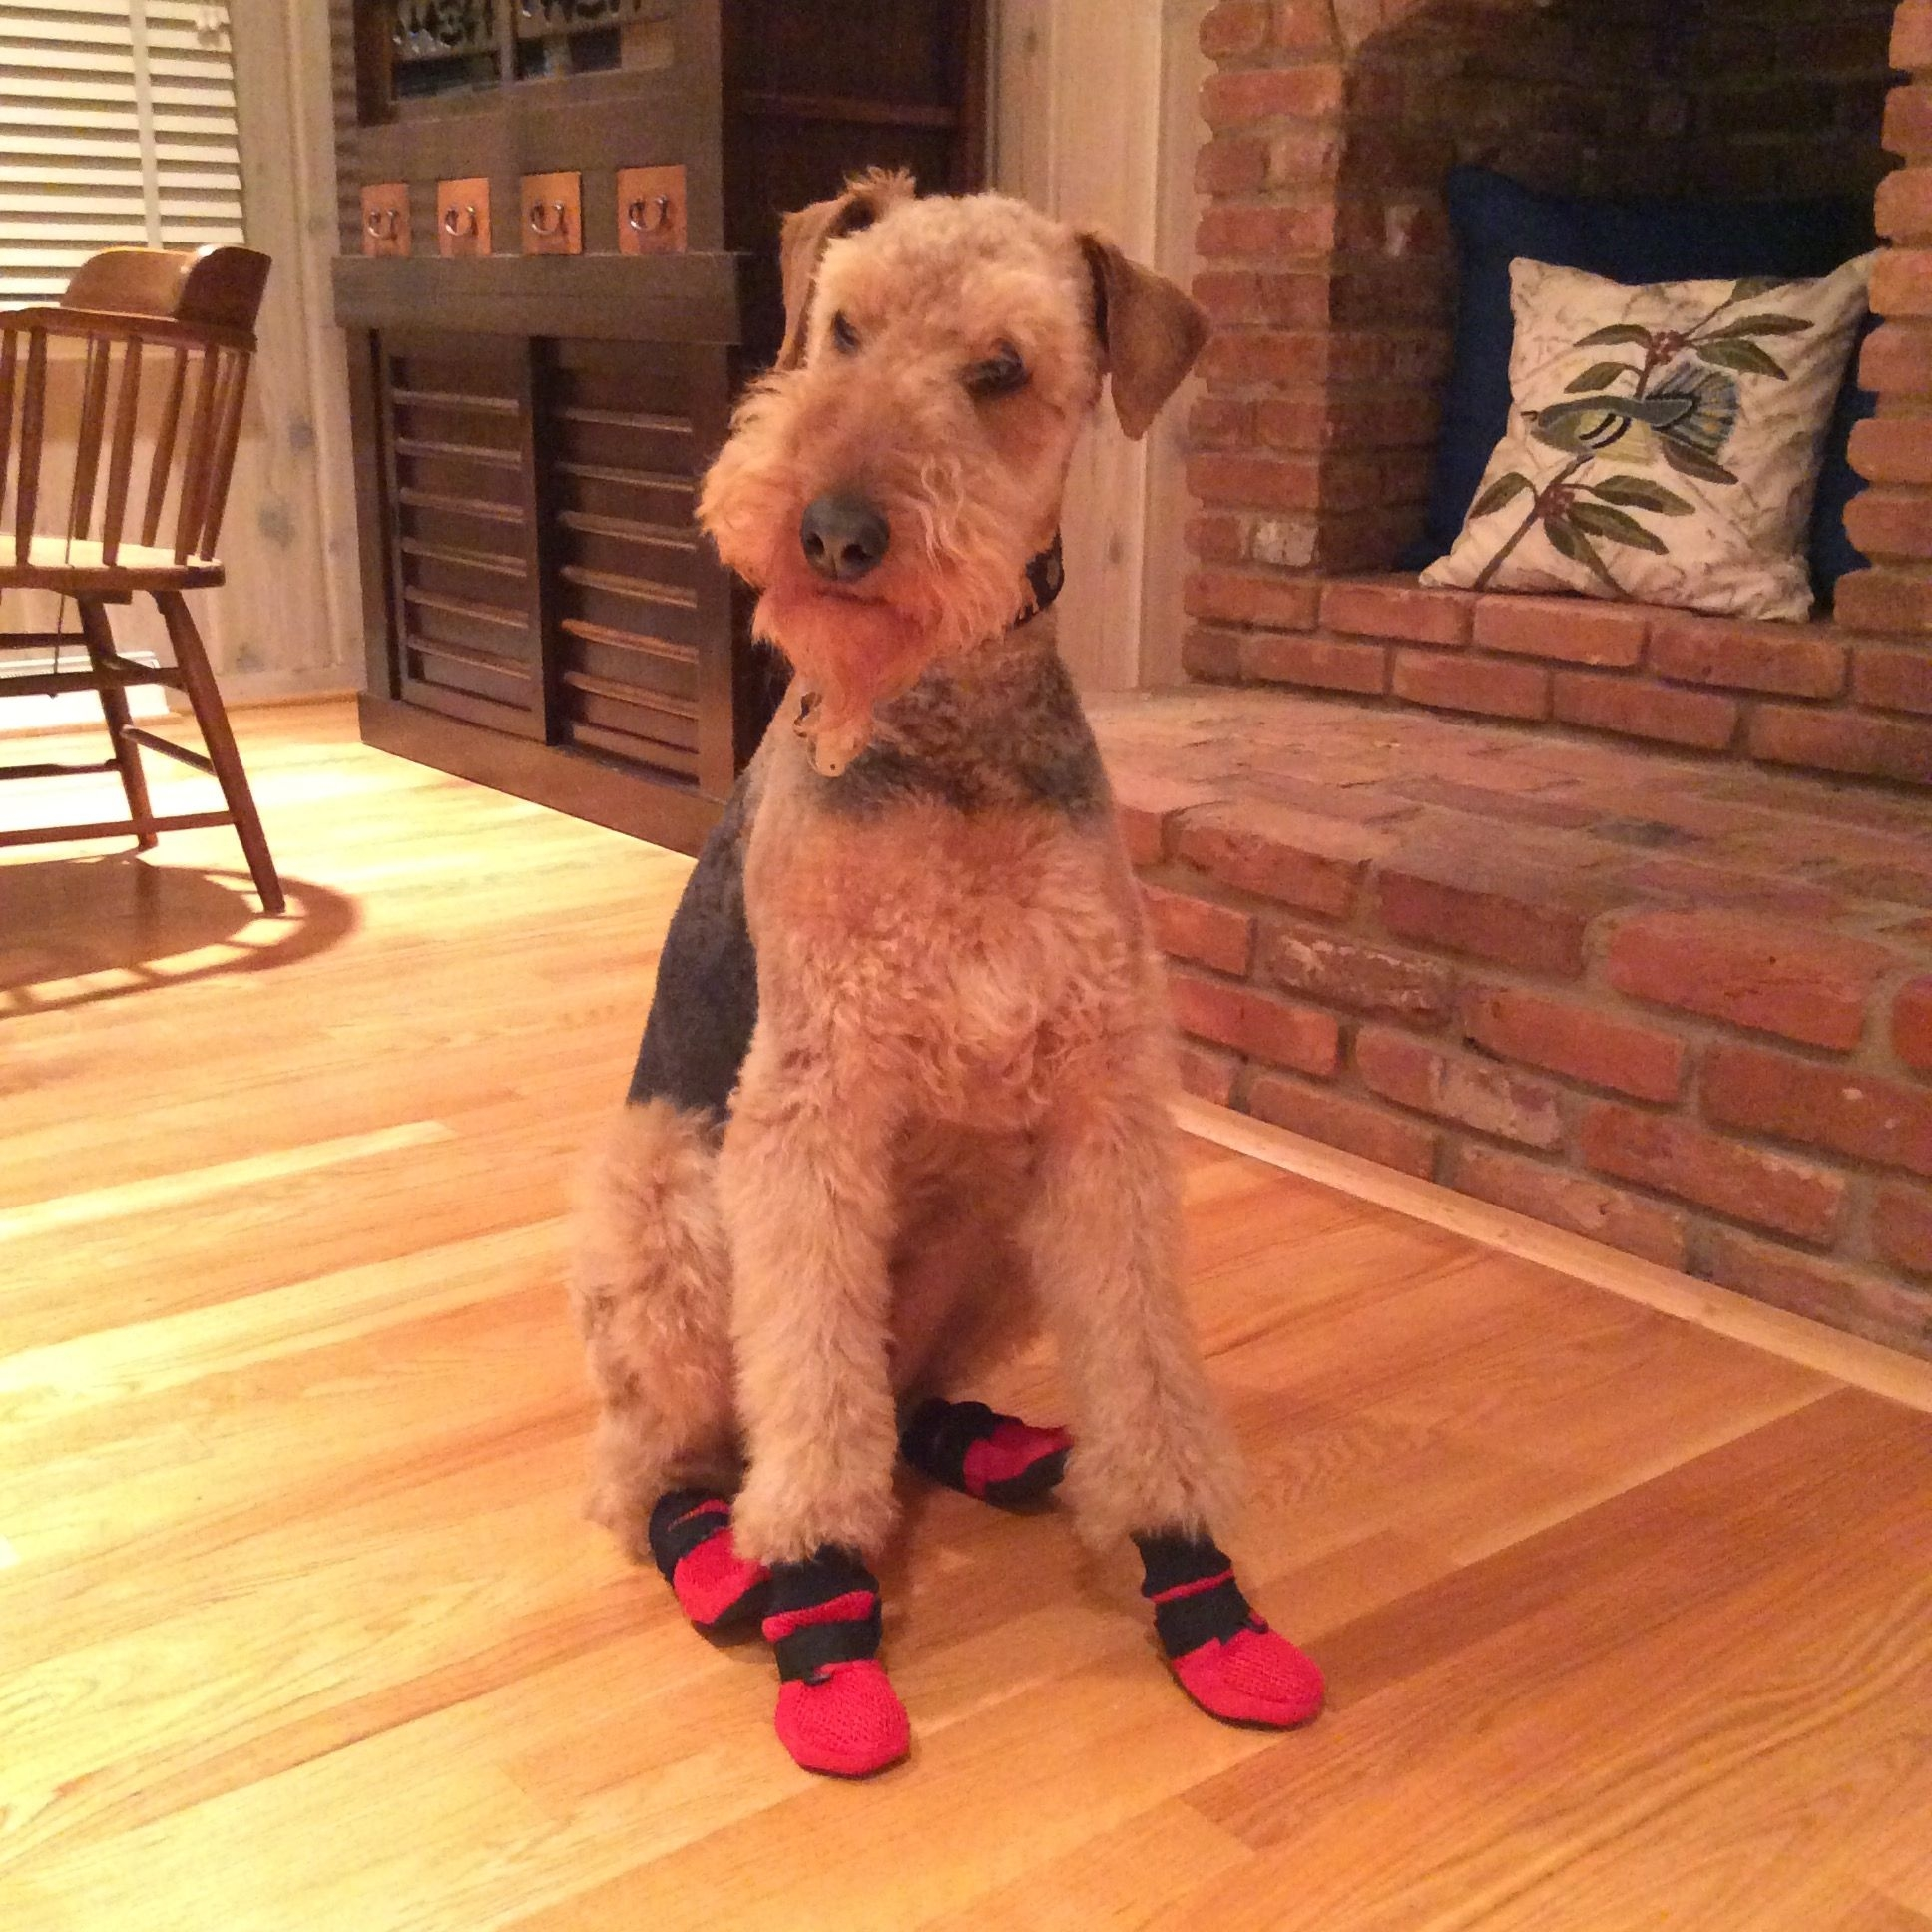 dog sitting on hardwood floor with red boots on